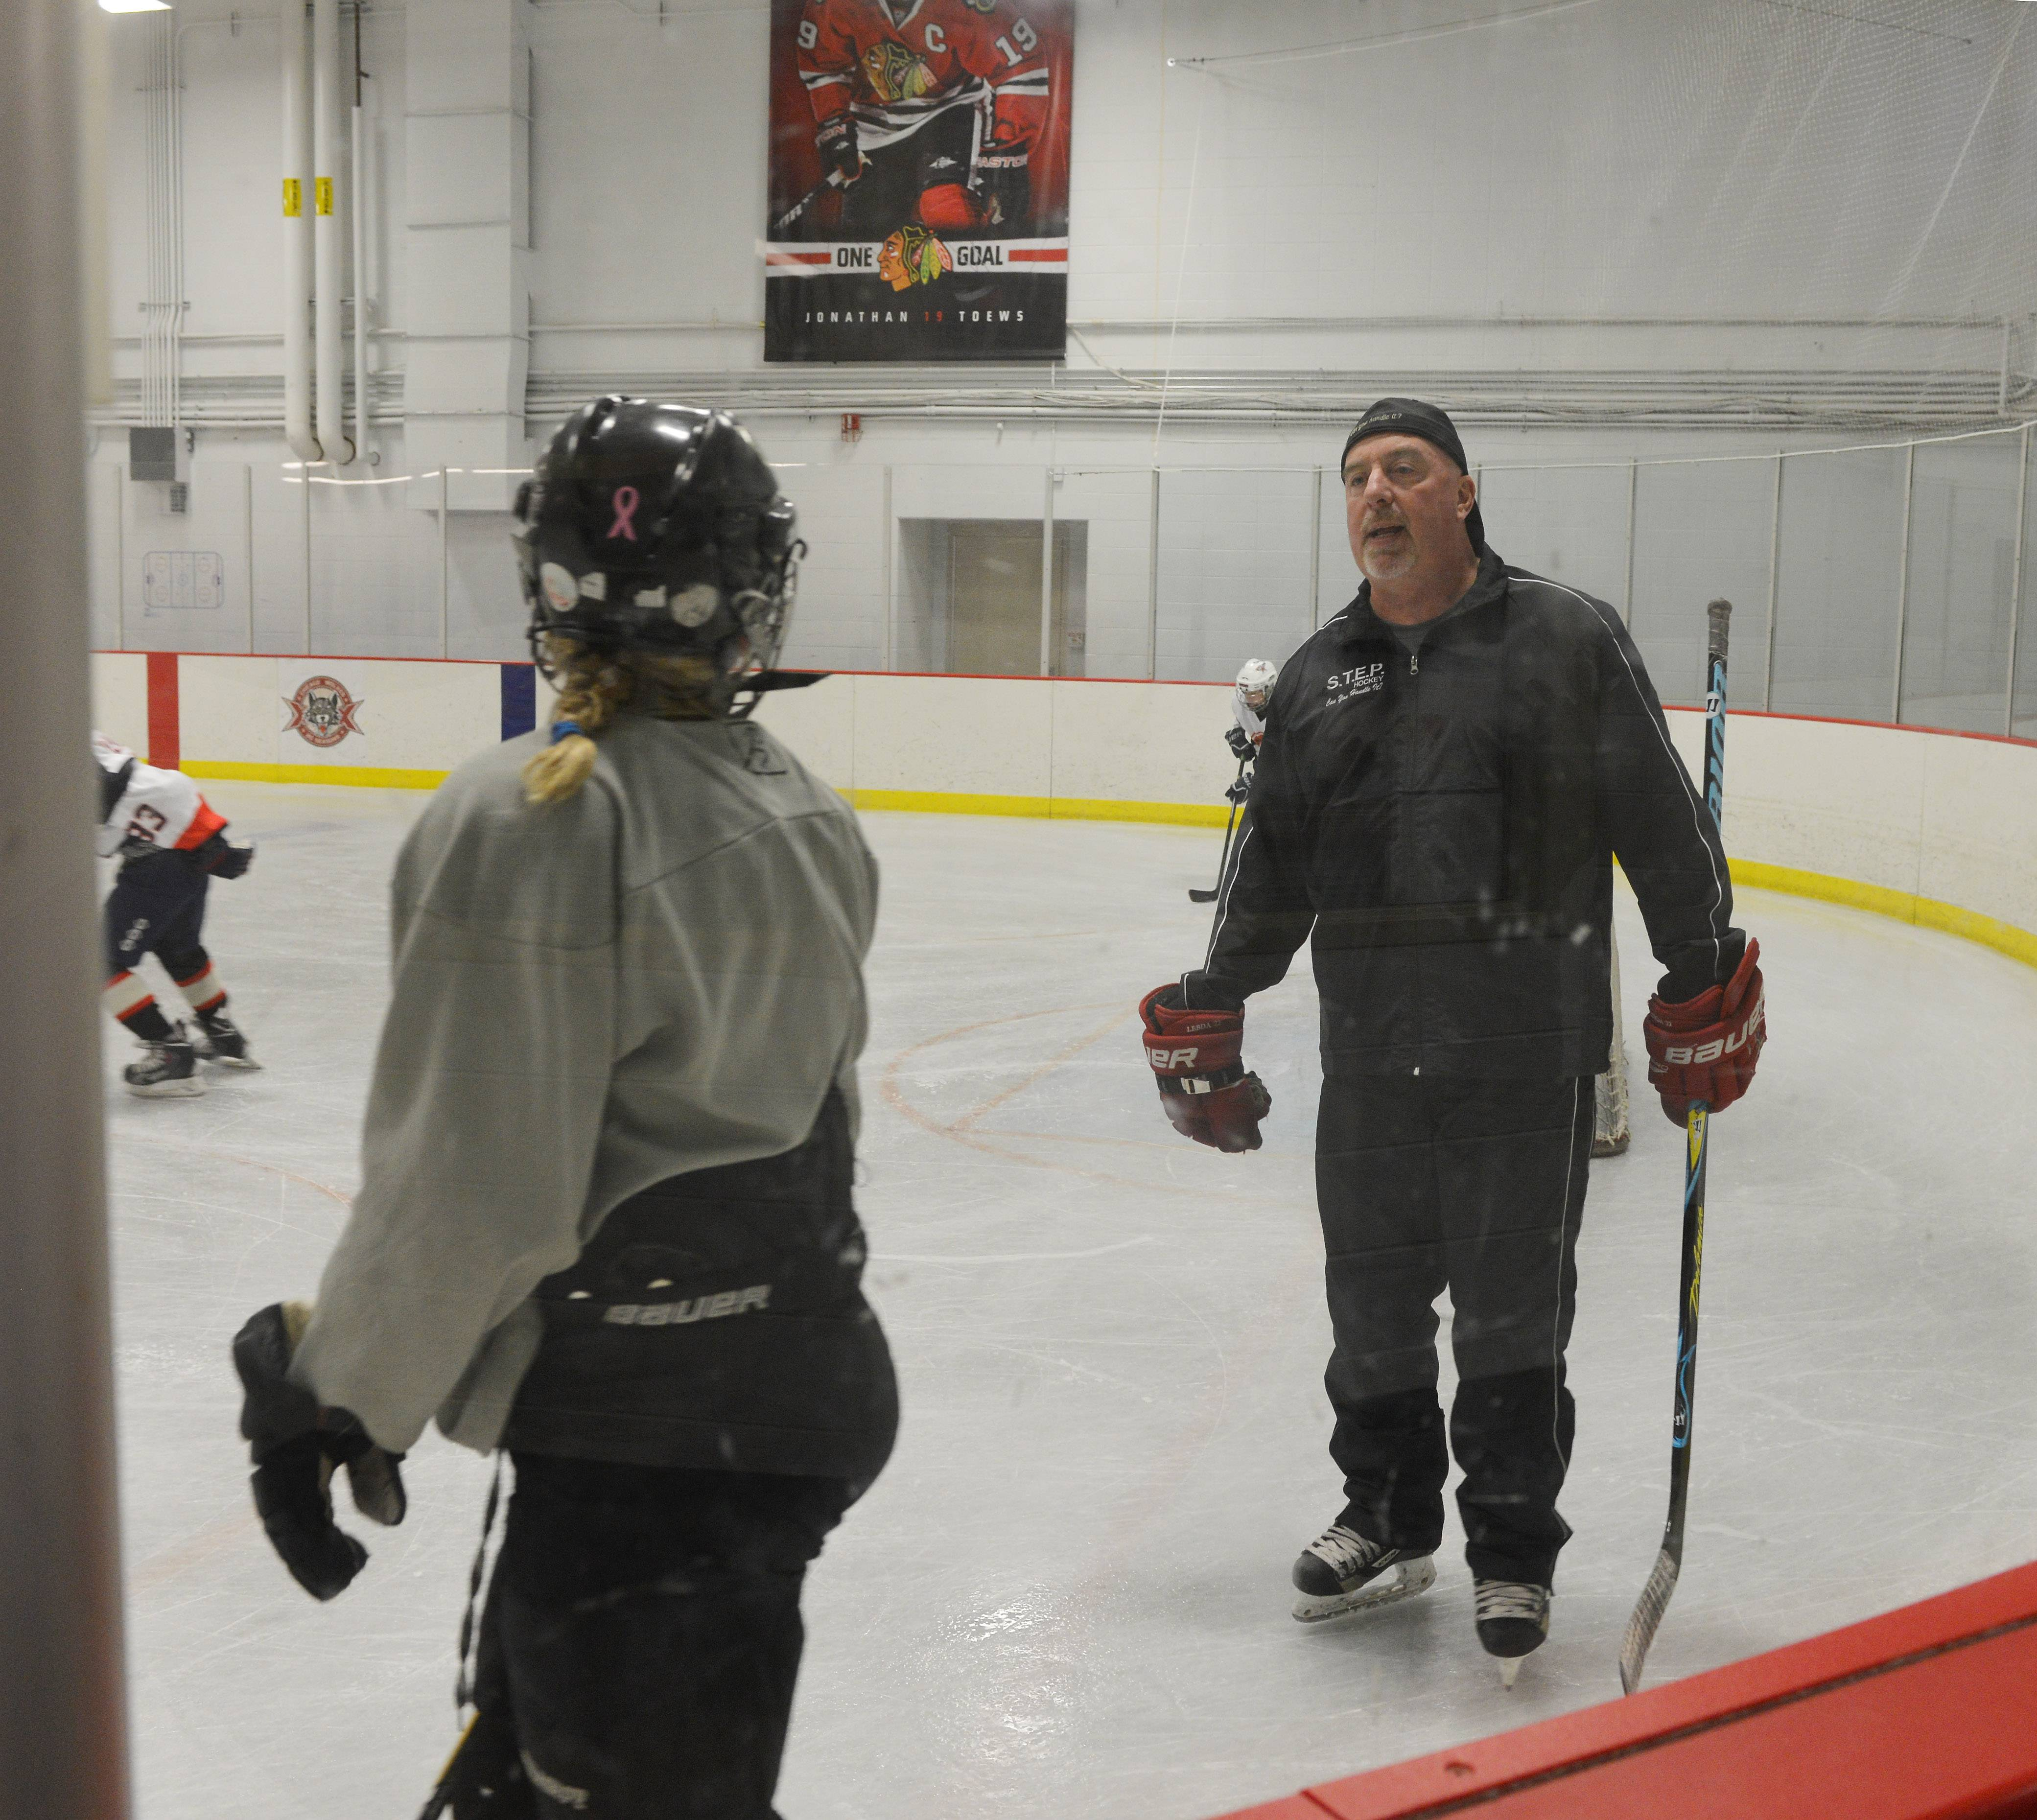 Sylvain Turcotte of Buffalo Grove has been coaching youth hockey in Glenview for 30 years. He says the investigation of Blackhawks star Patrick Kane presents a delicate situation for coaches and parents.